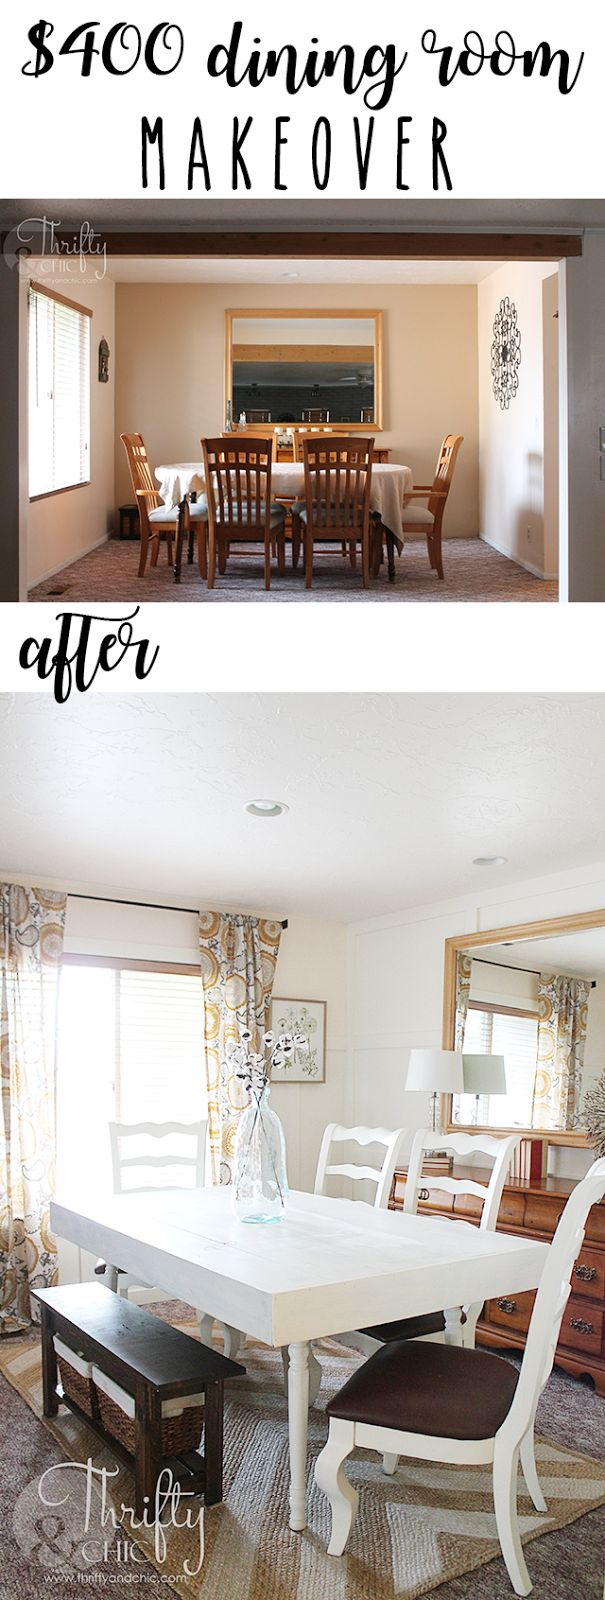 17 Best images about Best of Thrifty and Chic on Pinterest  Mantels, Home decor and Decorating